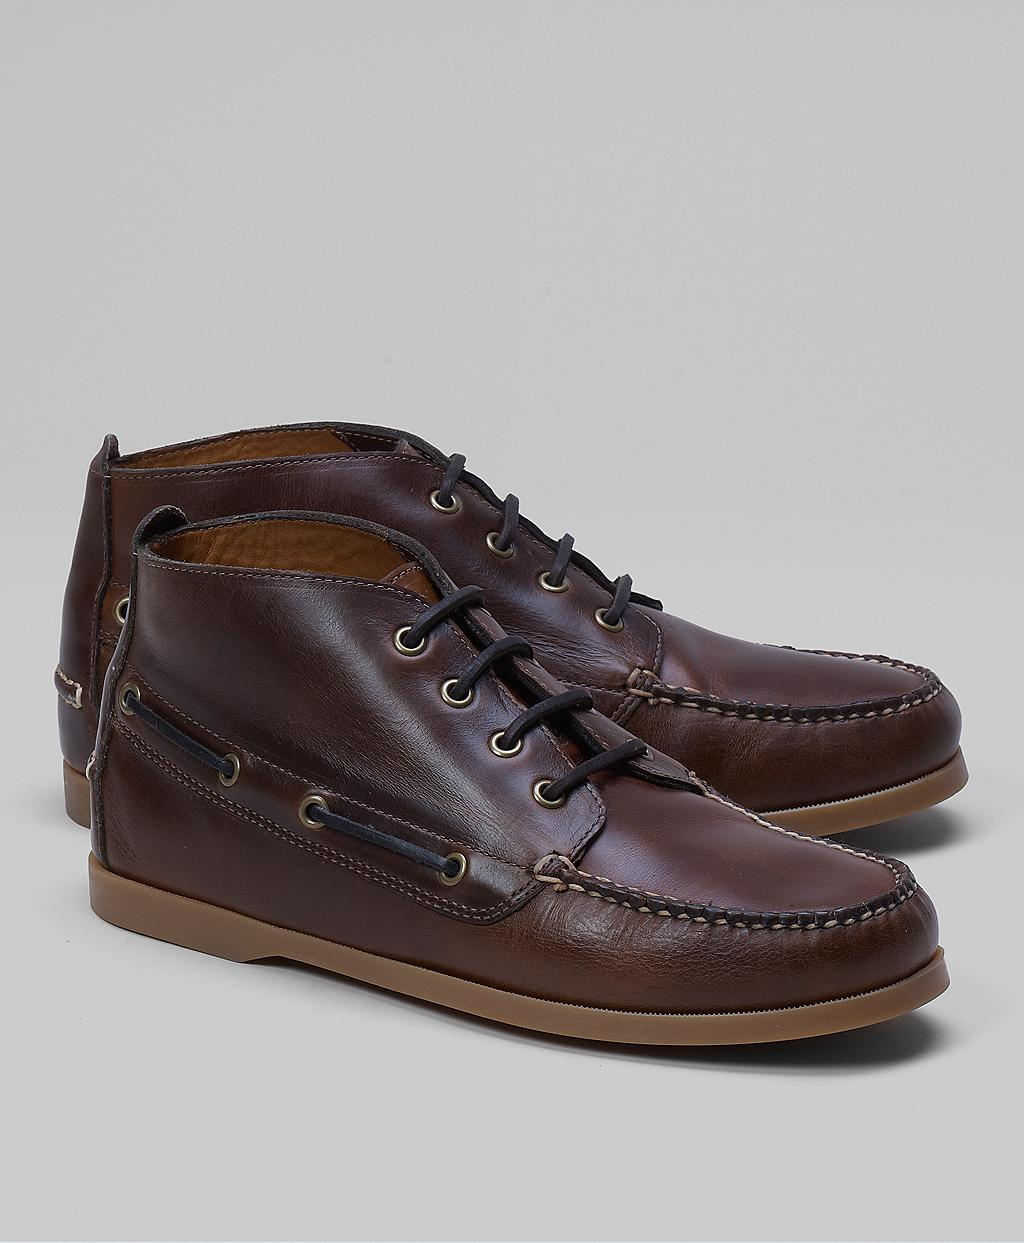 7612ff6bf5c Lyst - Brooks Brothers Chukka Boat Boots in Brown for Men